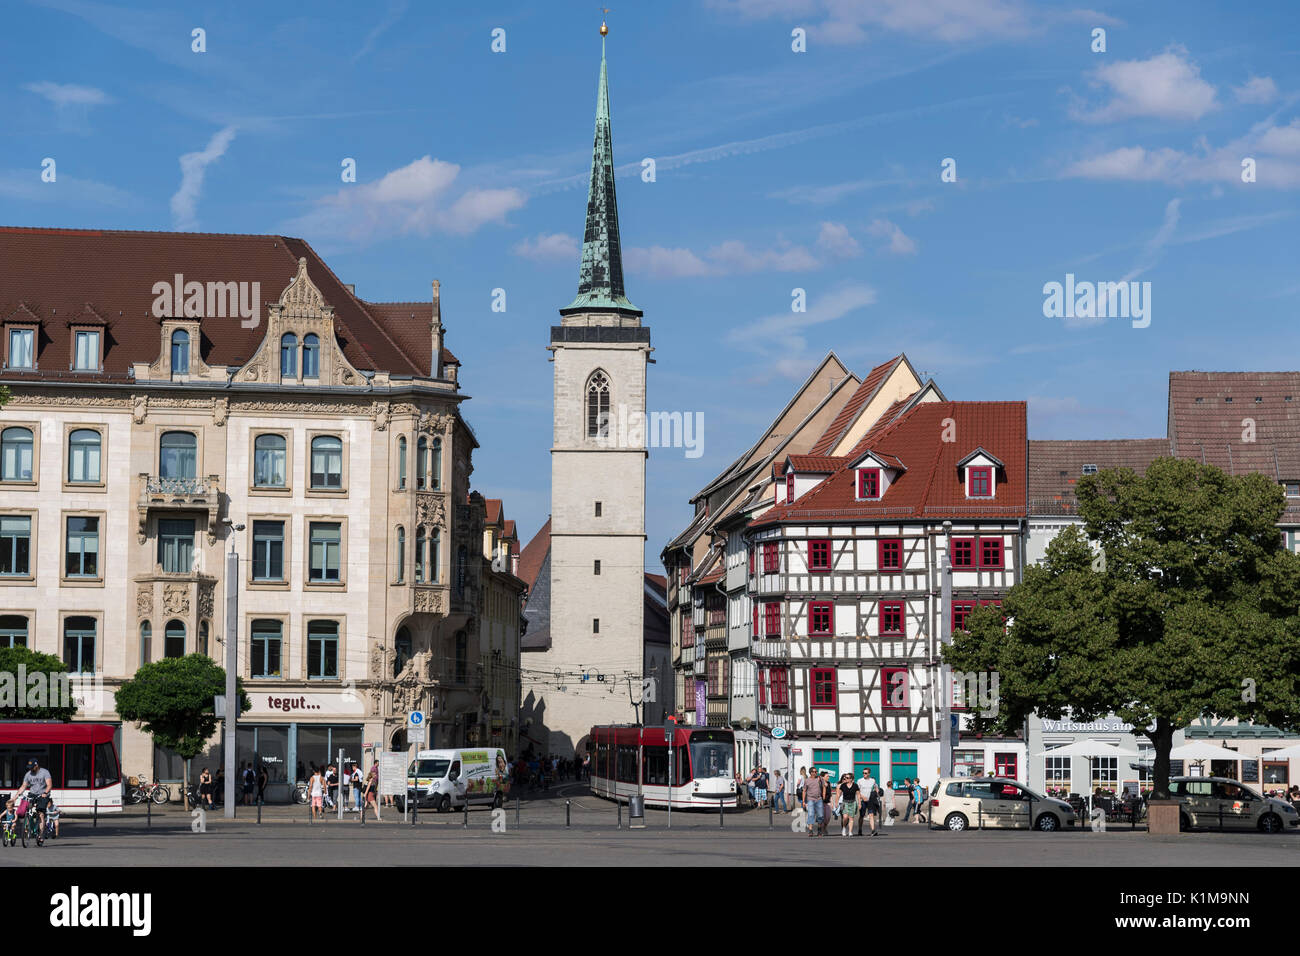 All Saints Church and half-timbered houses on Cathedral Square, Erfurt, Thuringia, Germany - Stock Image